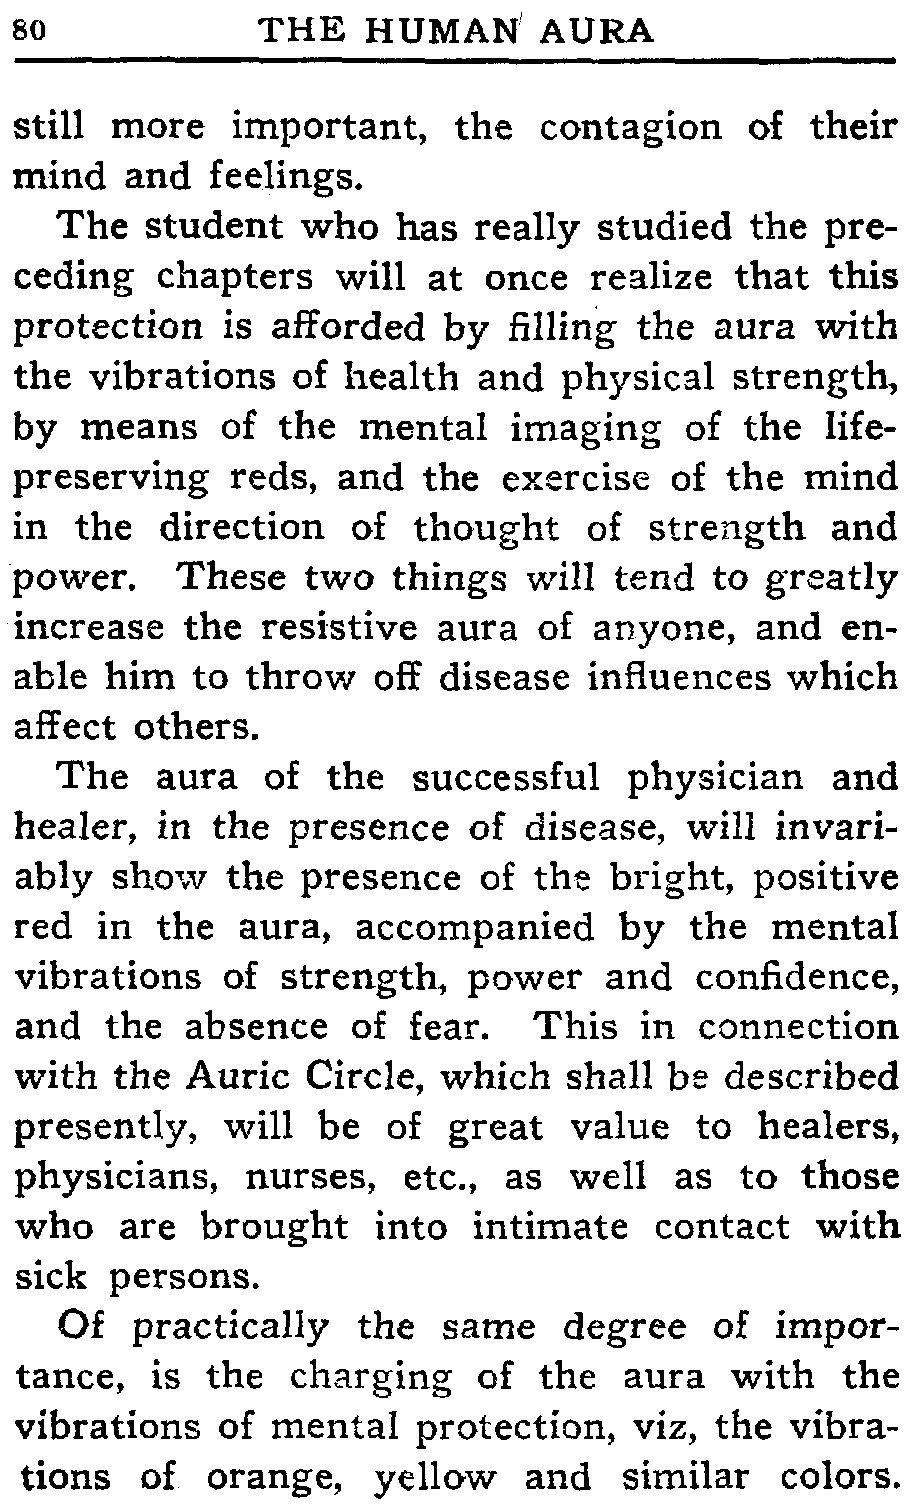 The project gutenberg ebook of the human aura by swami panchadasi more important the contagion of their mind and feelings fandeluxe Image collections